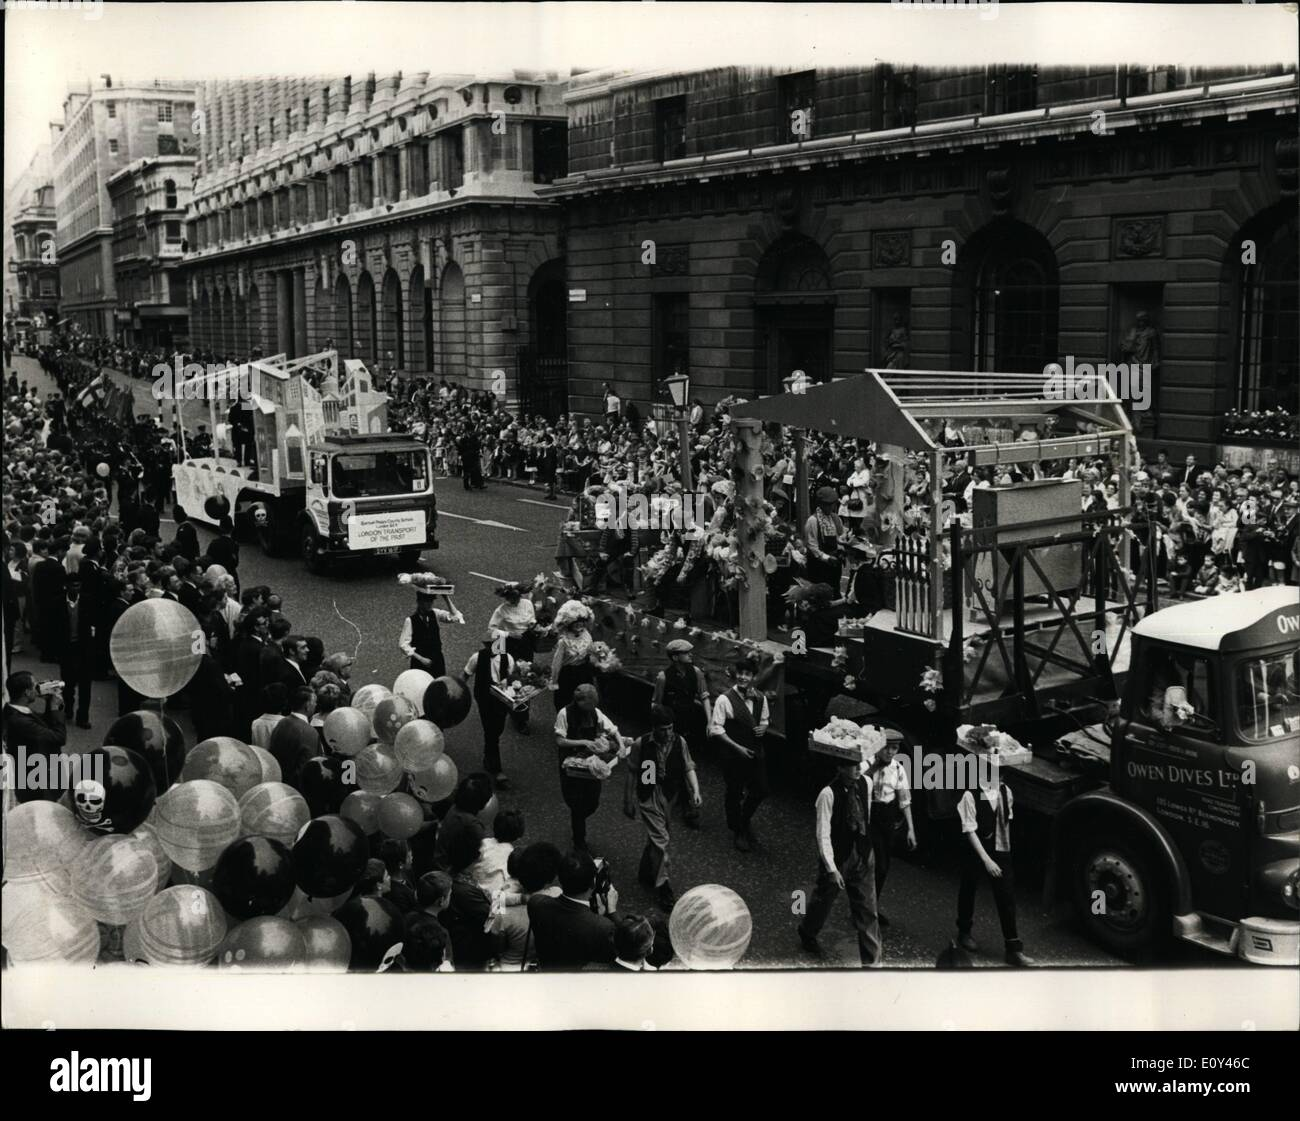 Jul. 13, 1968 - Children's day in the city of London ''(illegible)'': As part of the City of London Festi ''(illegible)'' Stock Photo